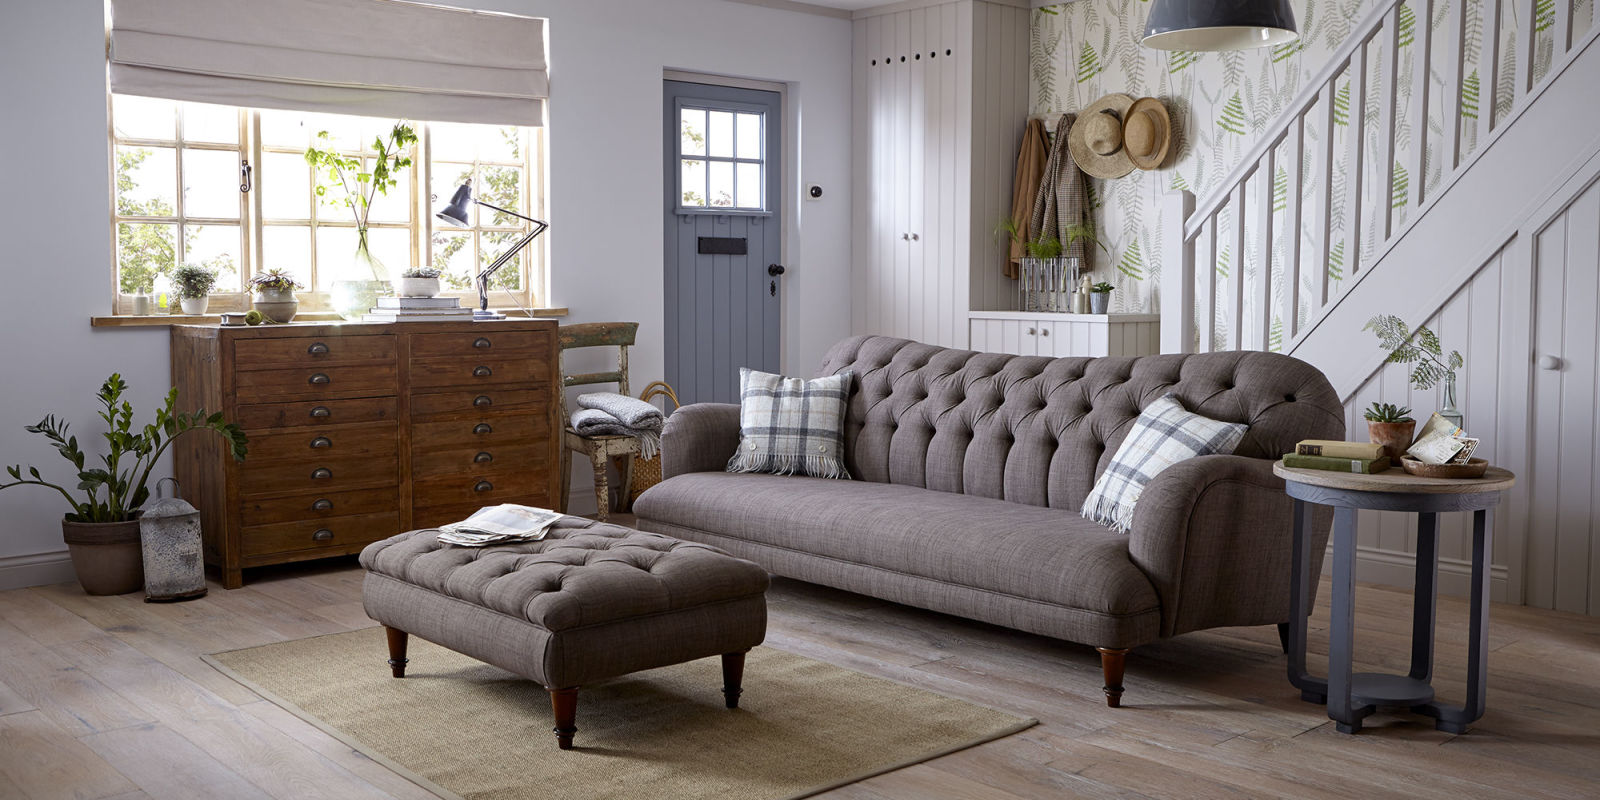 Introducing The Cotswold Inspired Country Living Burford